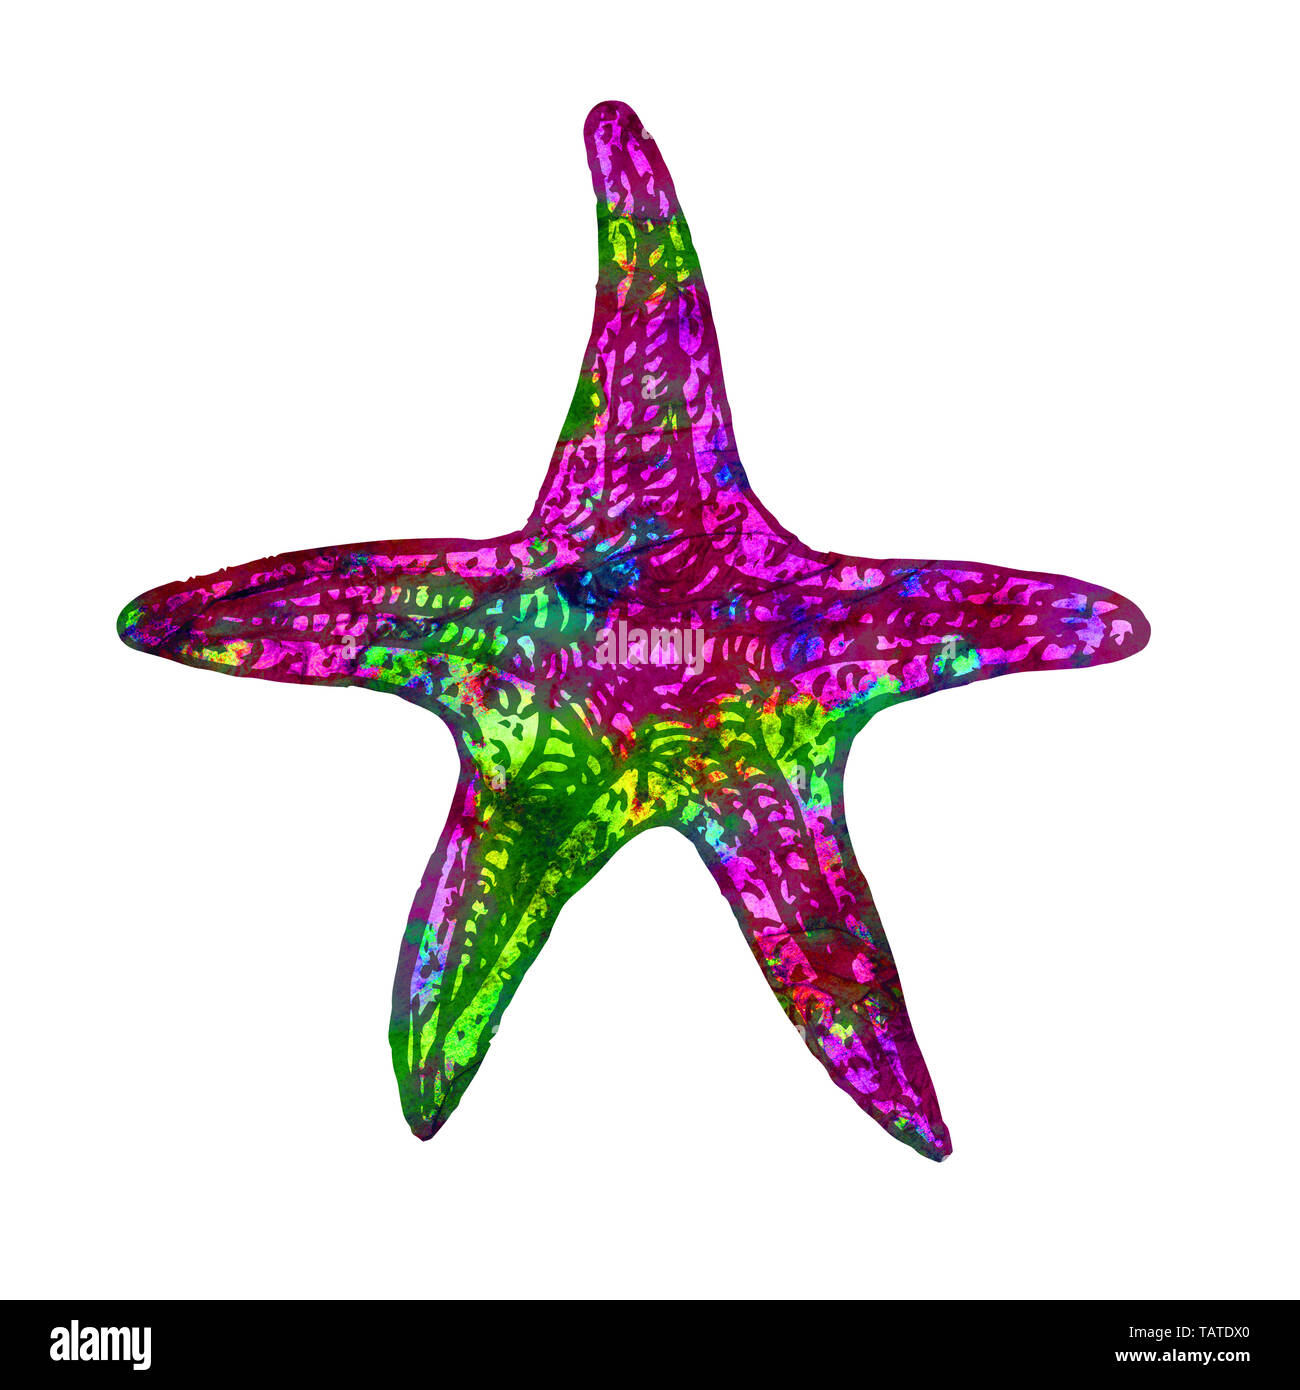 Sea star isolated illustration, hand painted colorful abstract watercolor magenta, green, yellow splashes - Stock Image